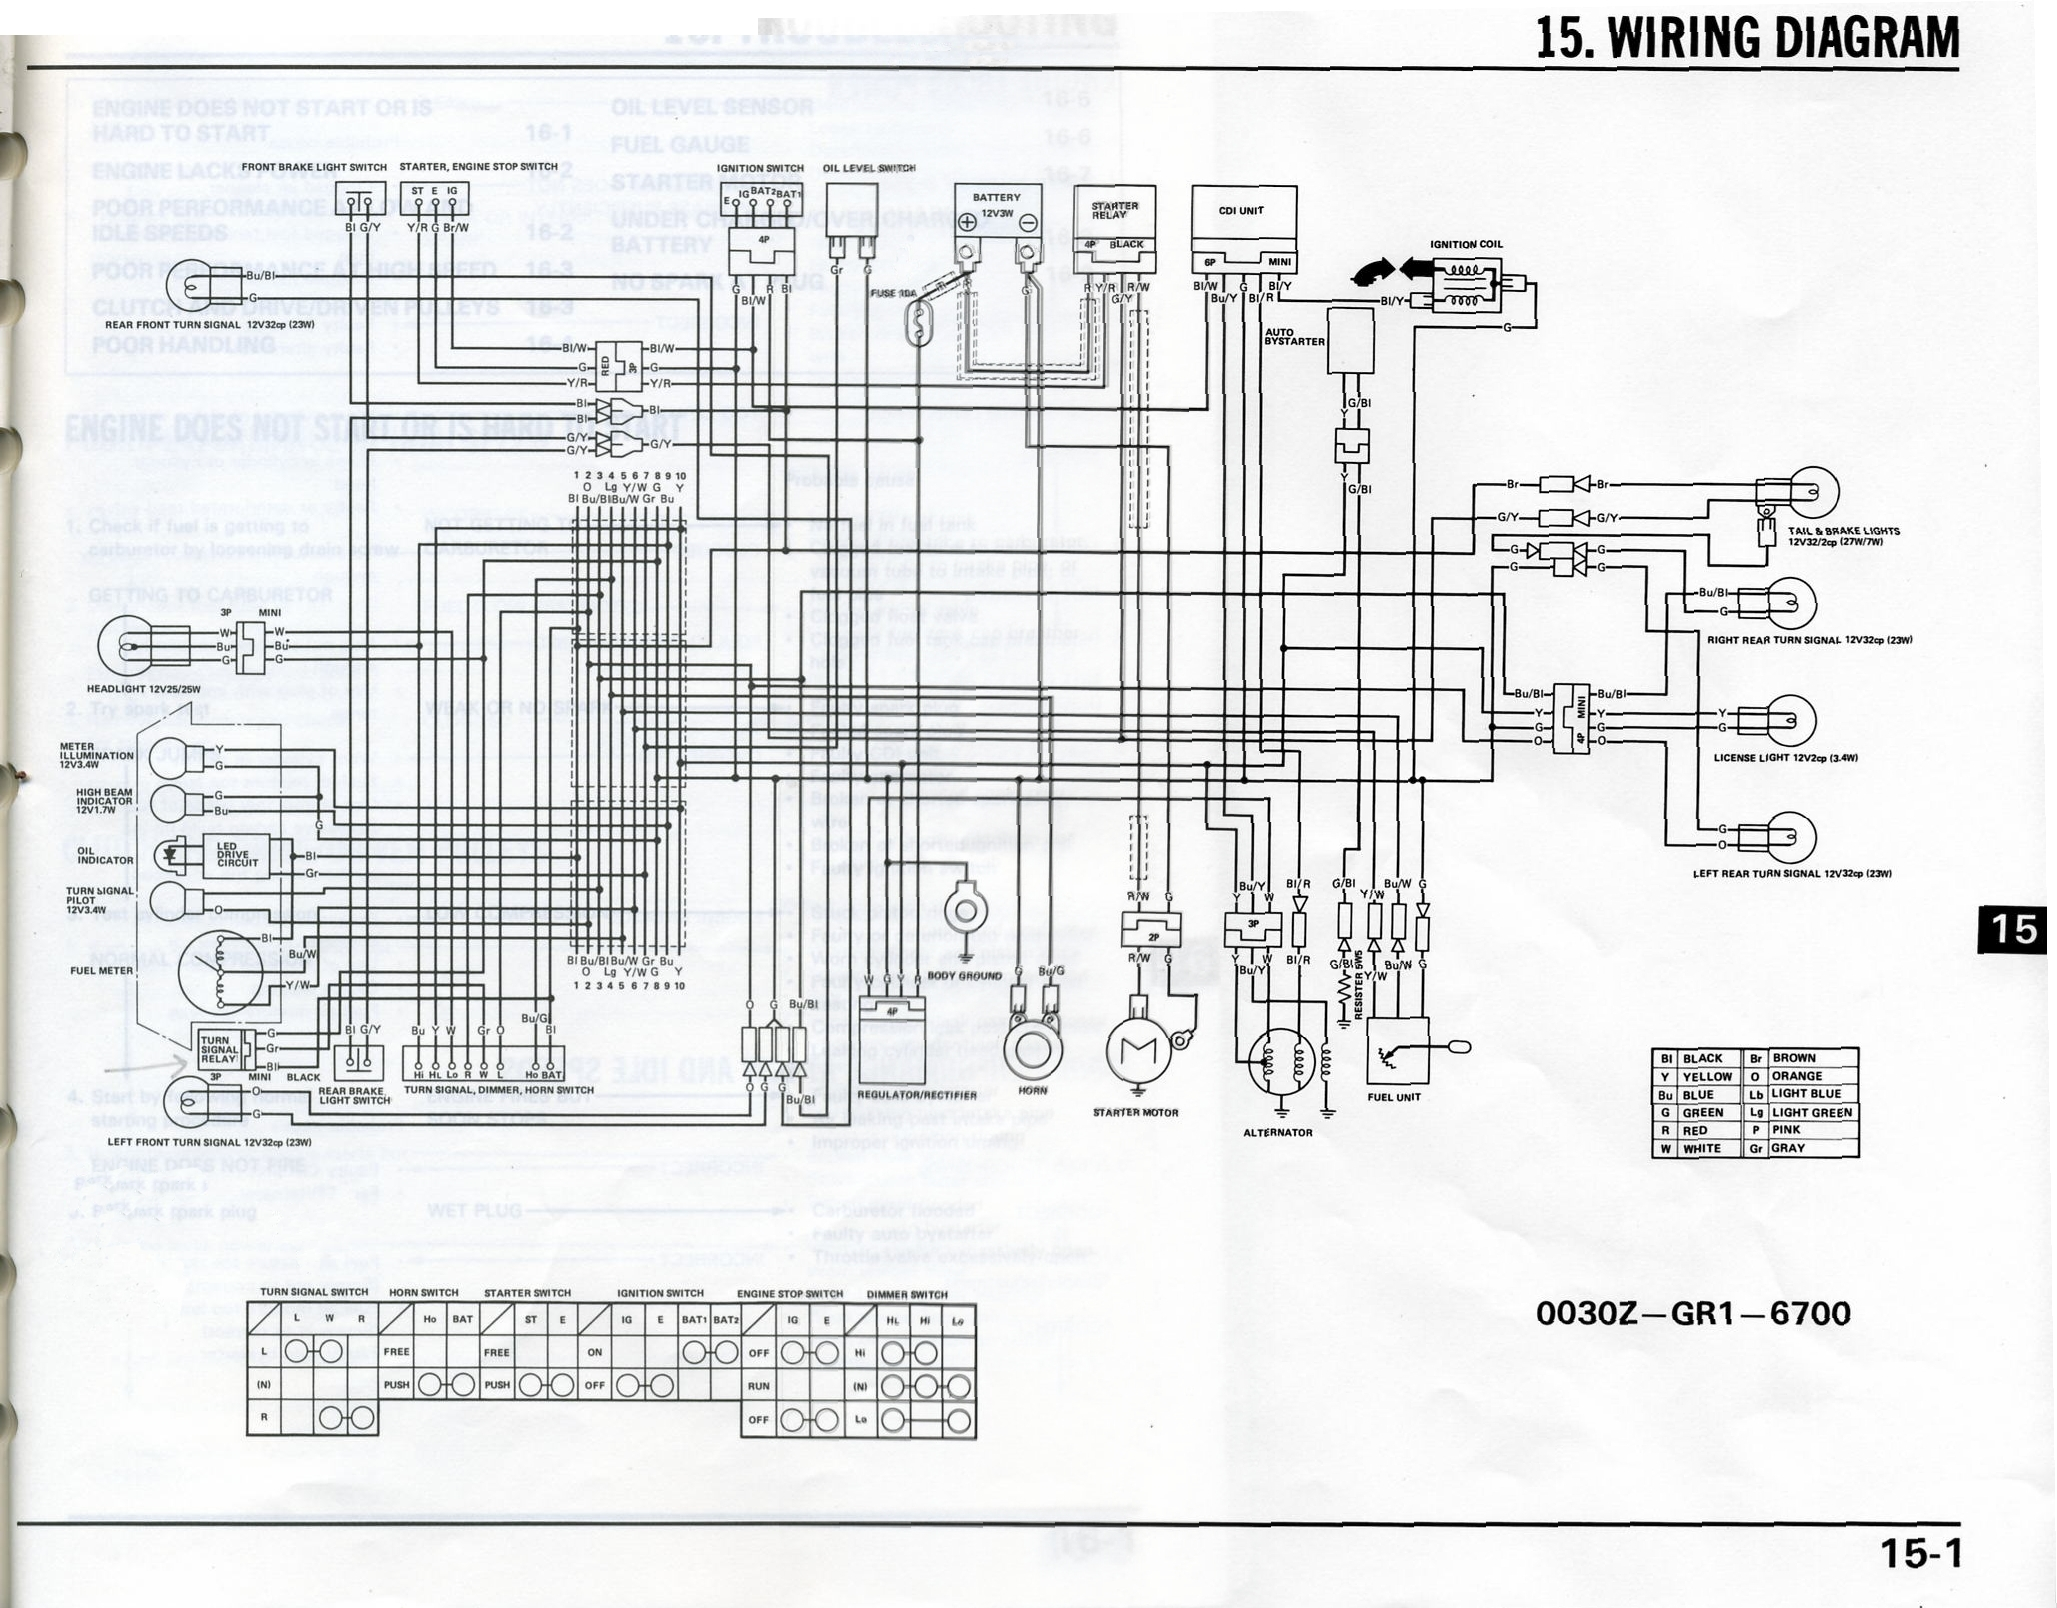 Honda Elite 80 Wiring Diagram